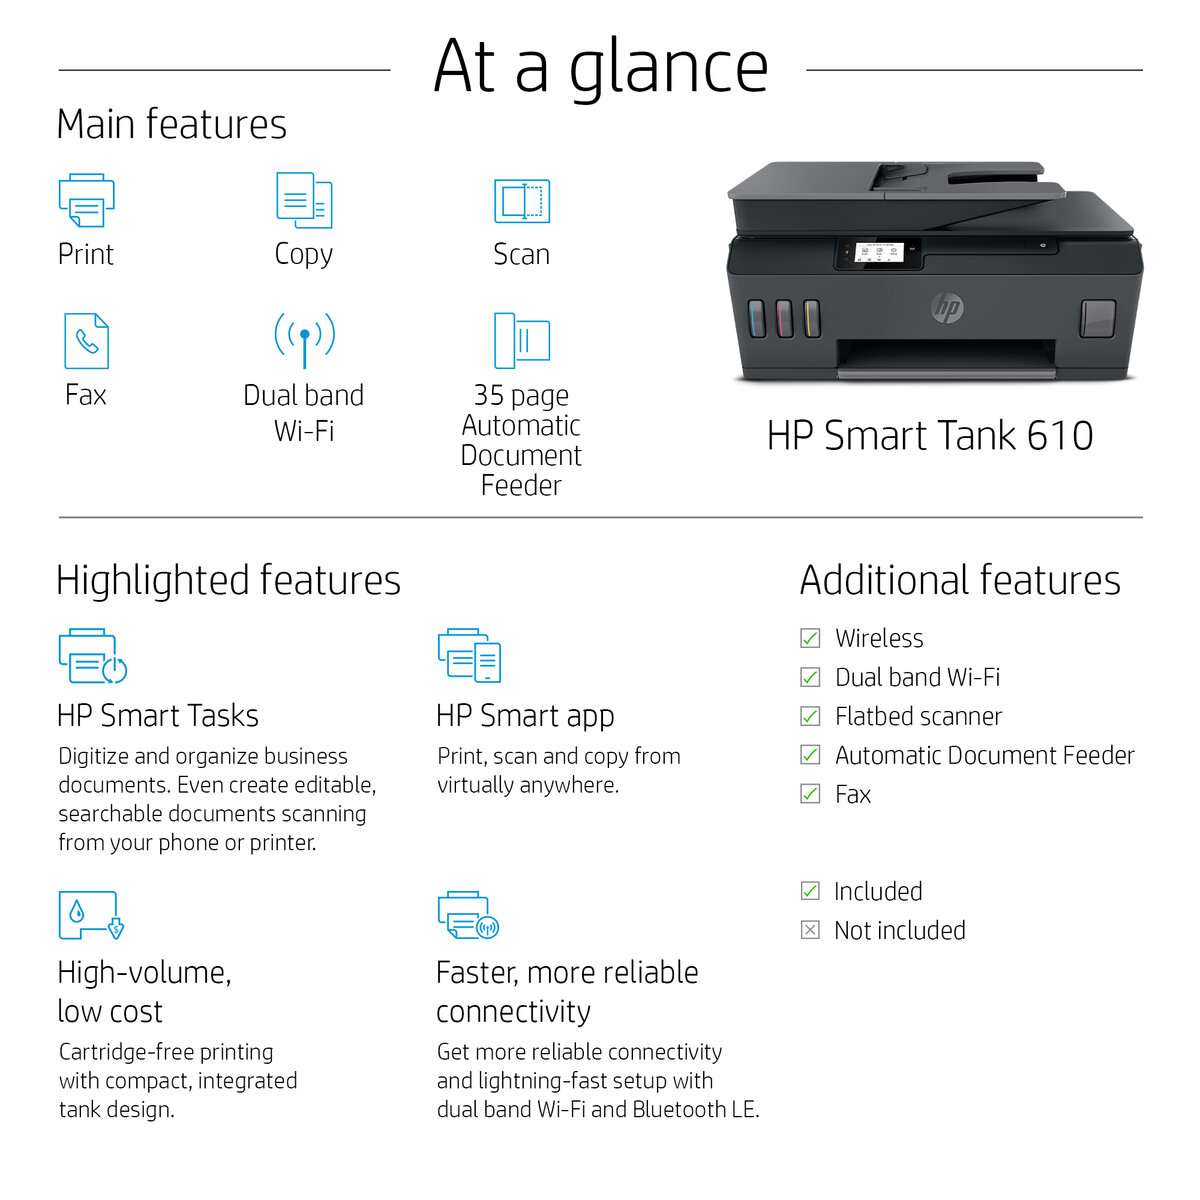 slide 1 of 12,show larger image, hp smart tank 615 wireless all-in-one